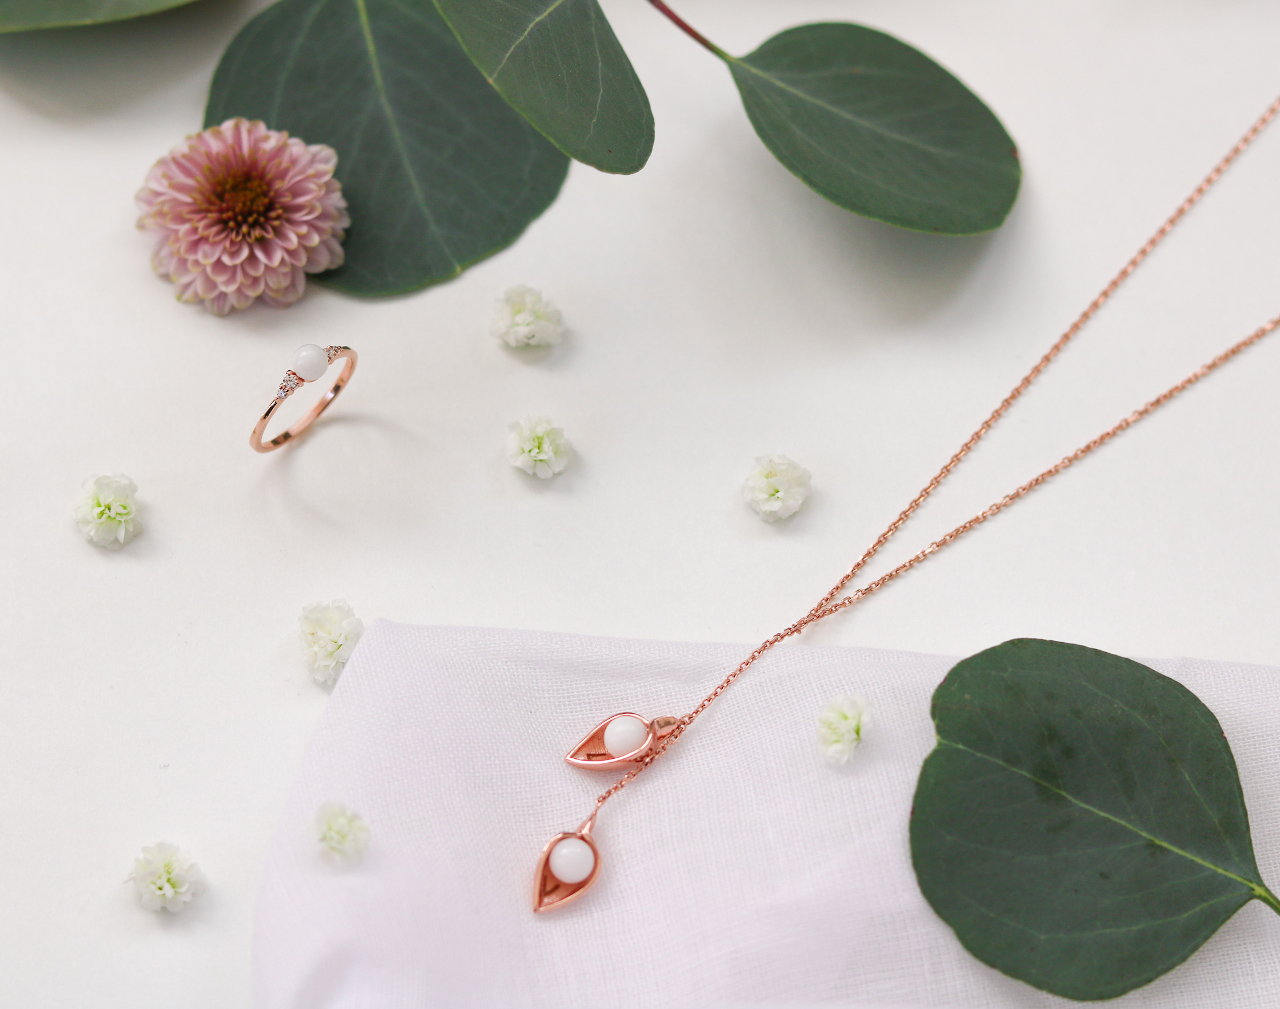 breast milk jewelry, Rose-coloured joy and white pearls, LaJoieenRose